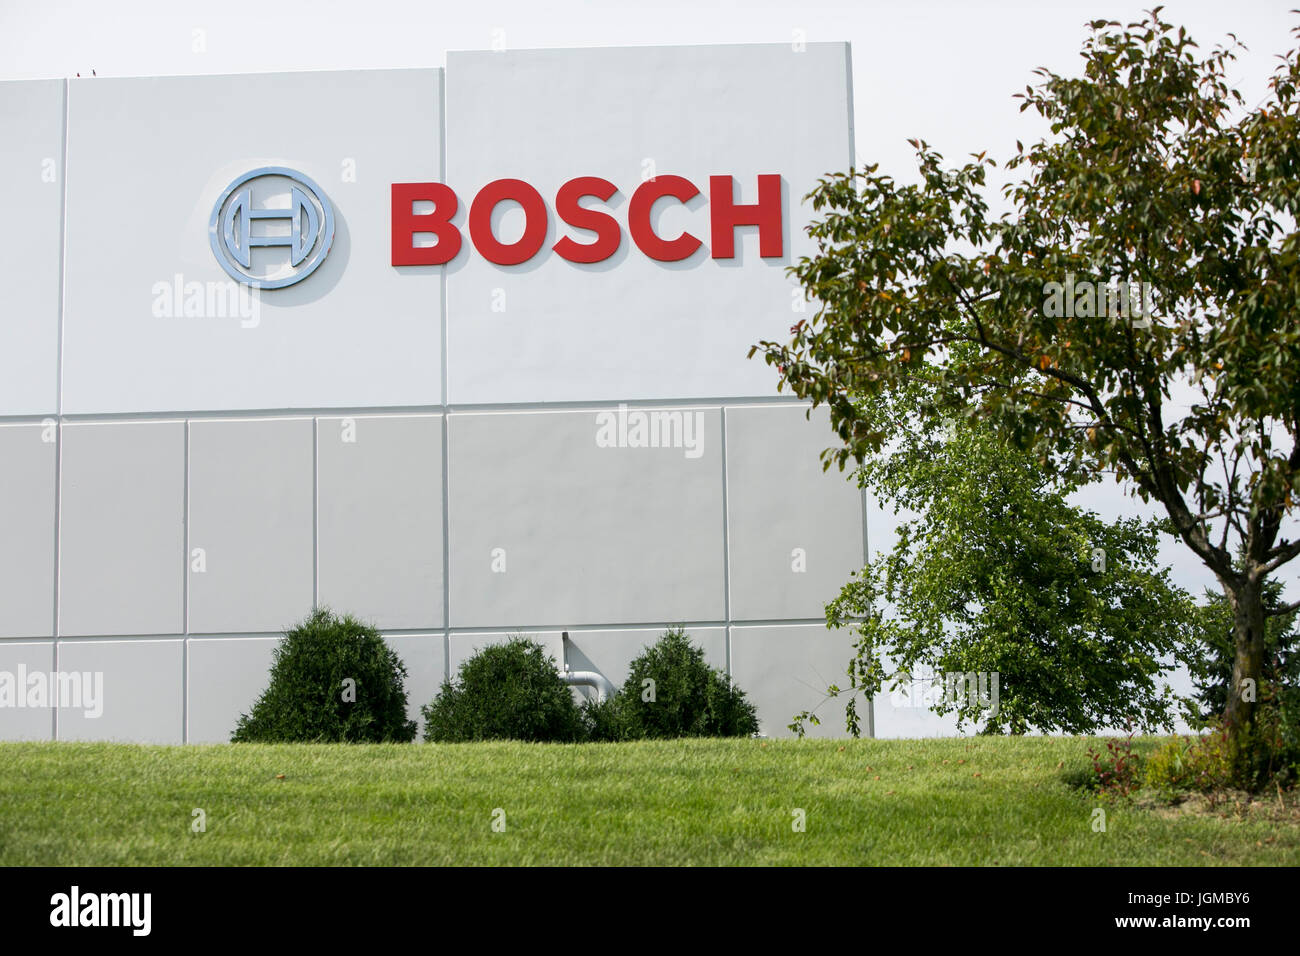 robert bosch battery systems gmbh